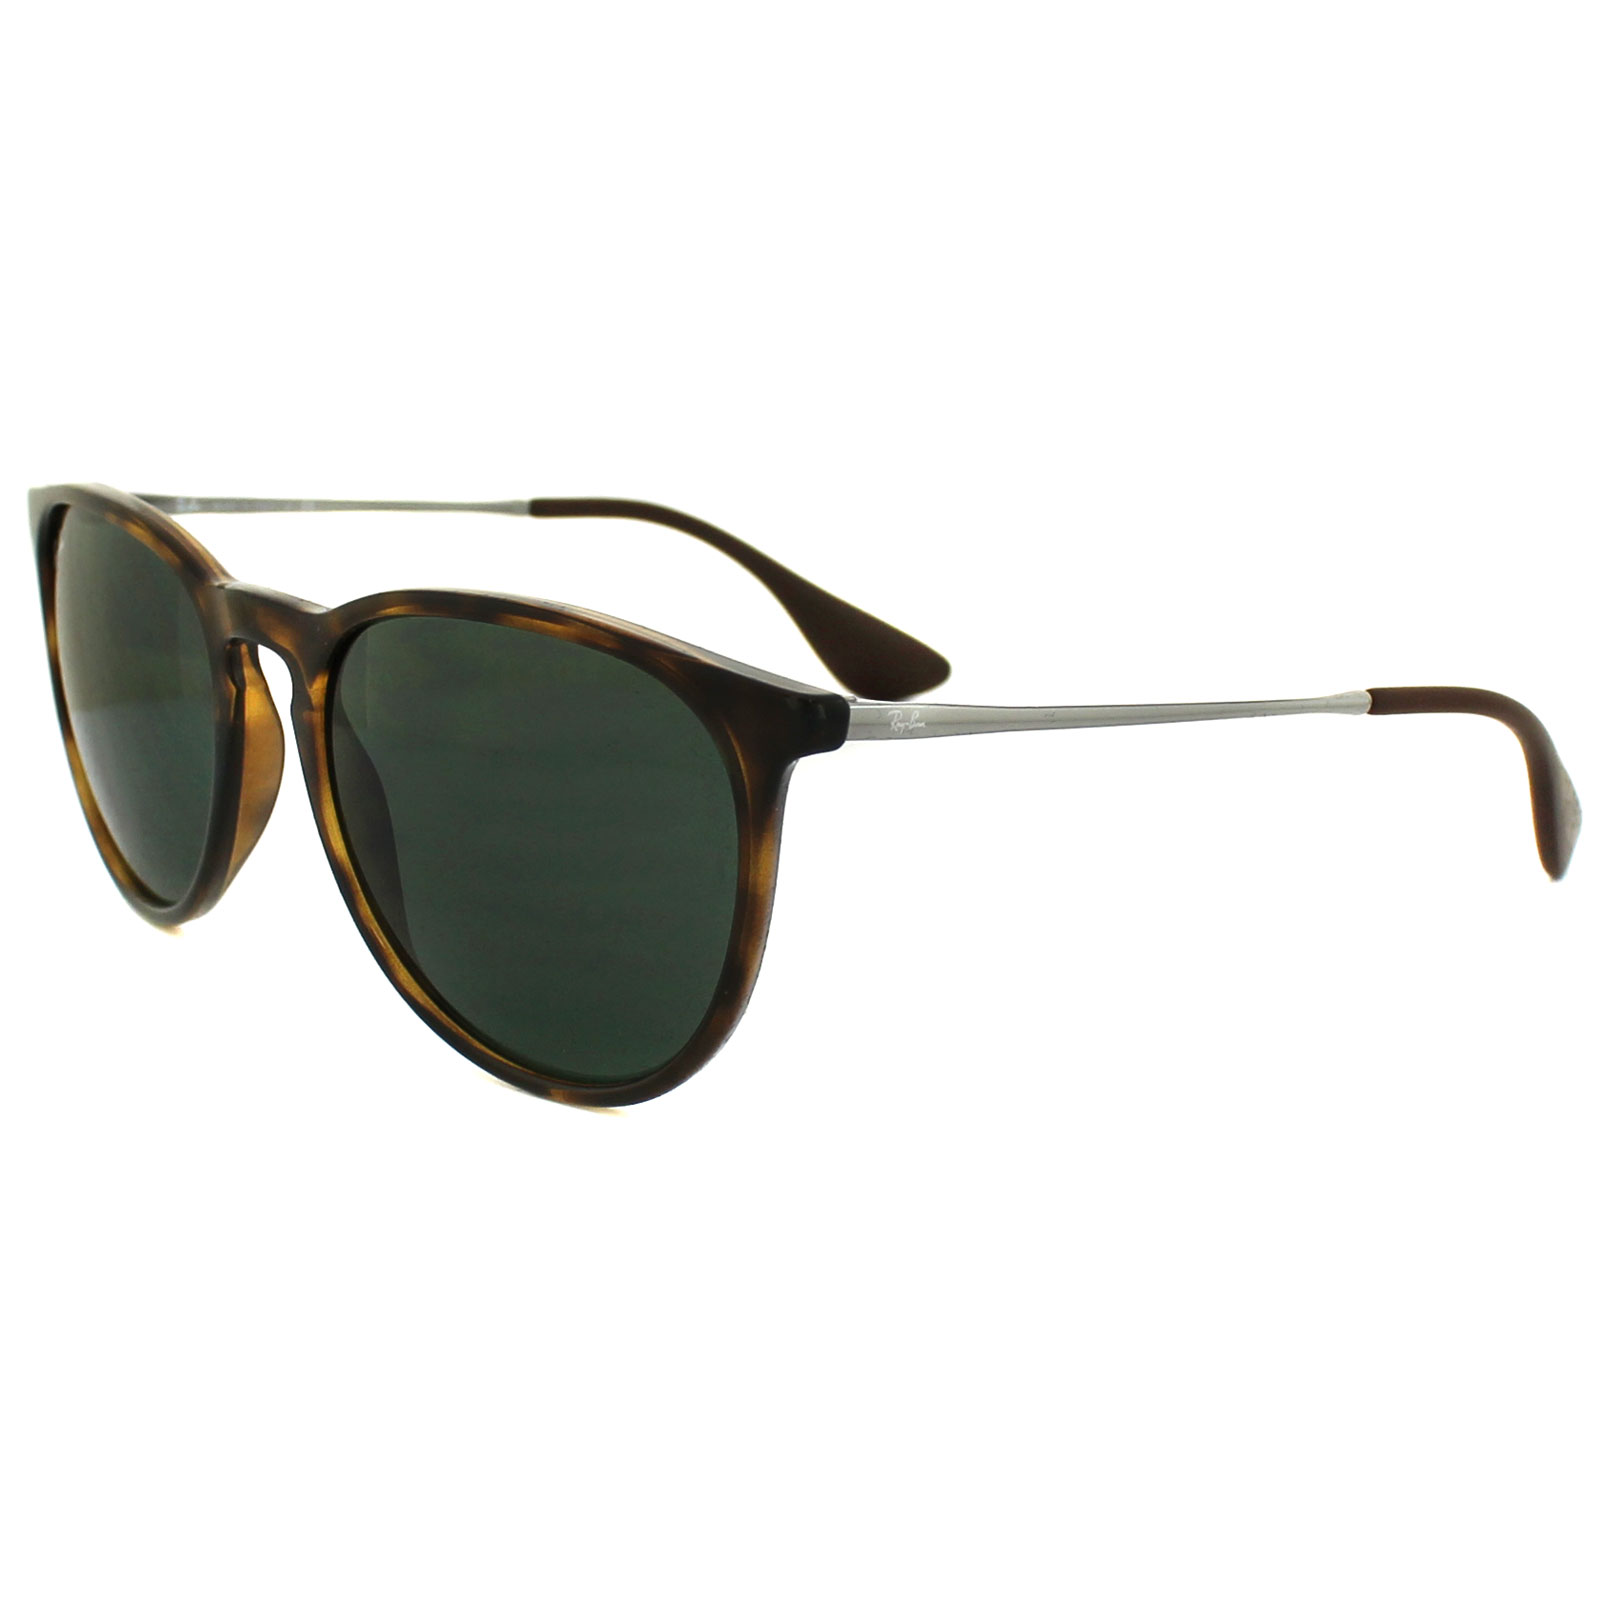 ray ban wayfarer sunglasses cheap uk  ray ban erika 4171 sunglasses